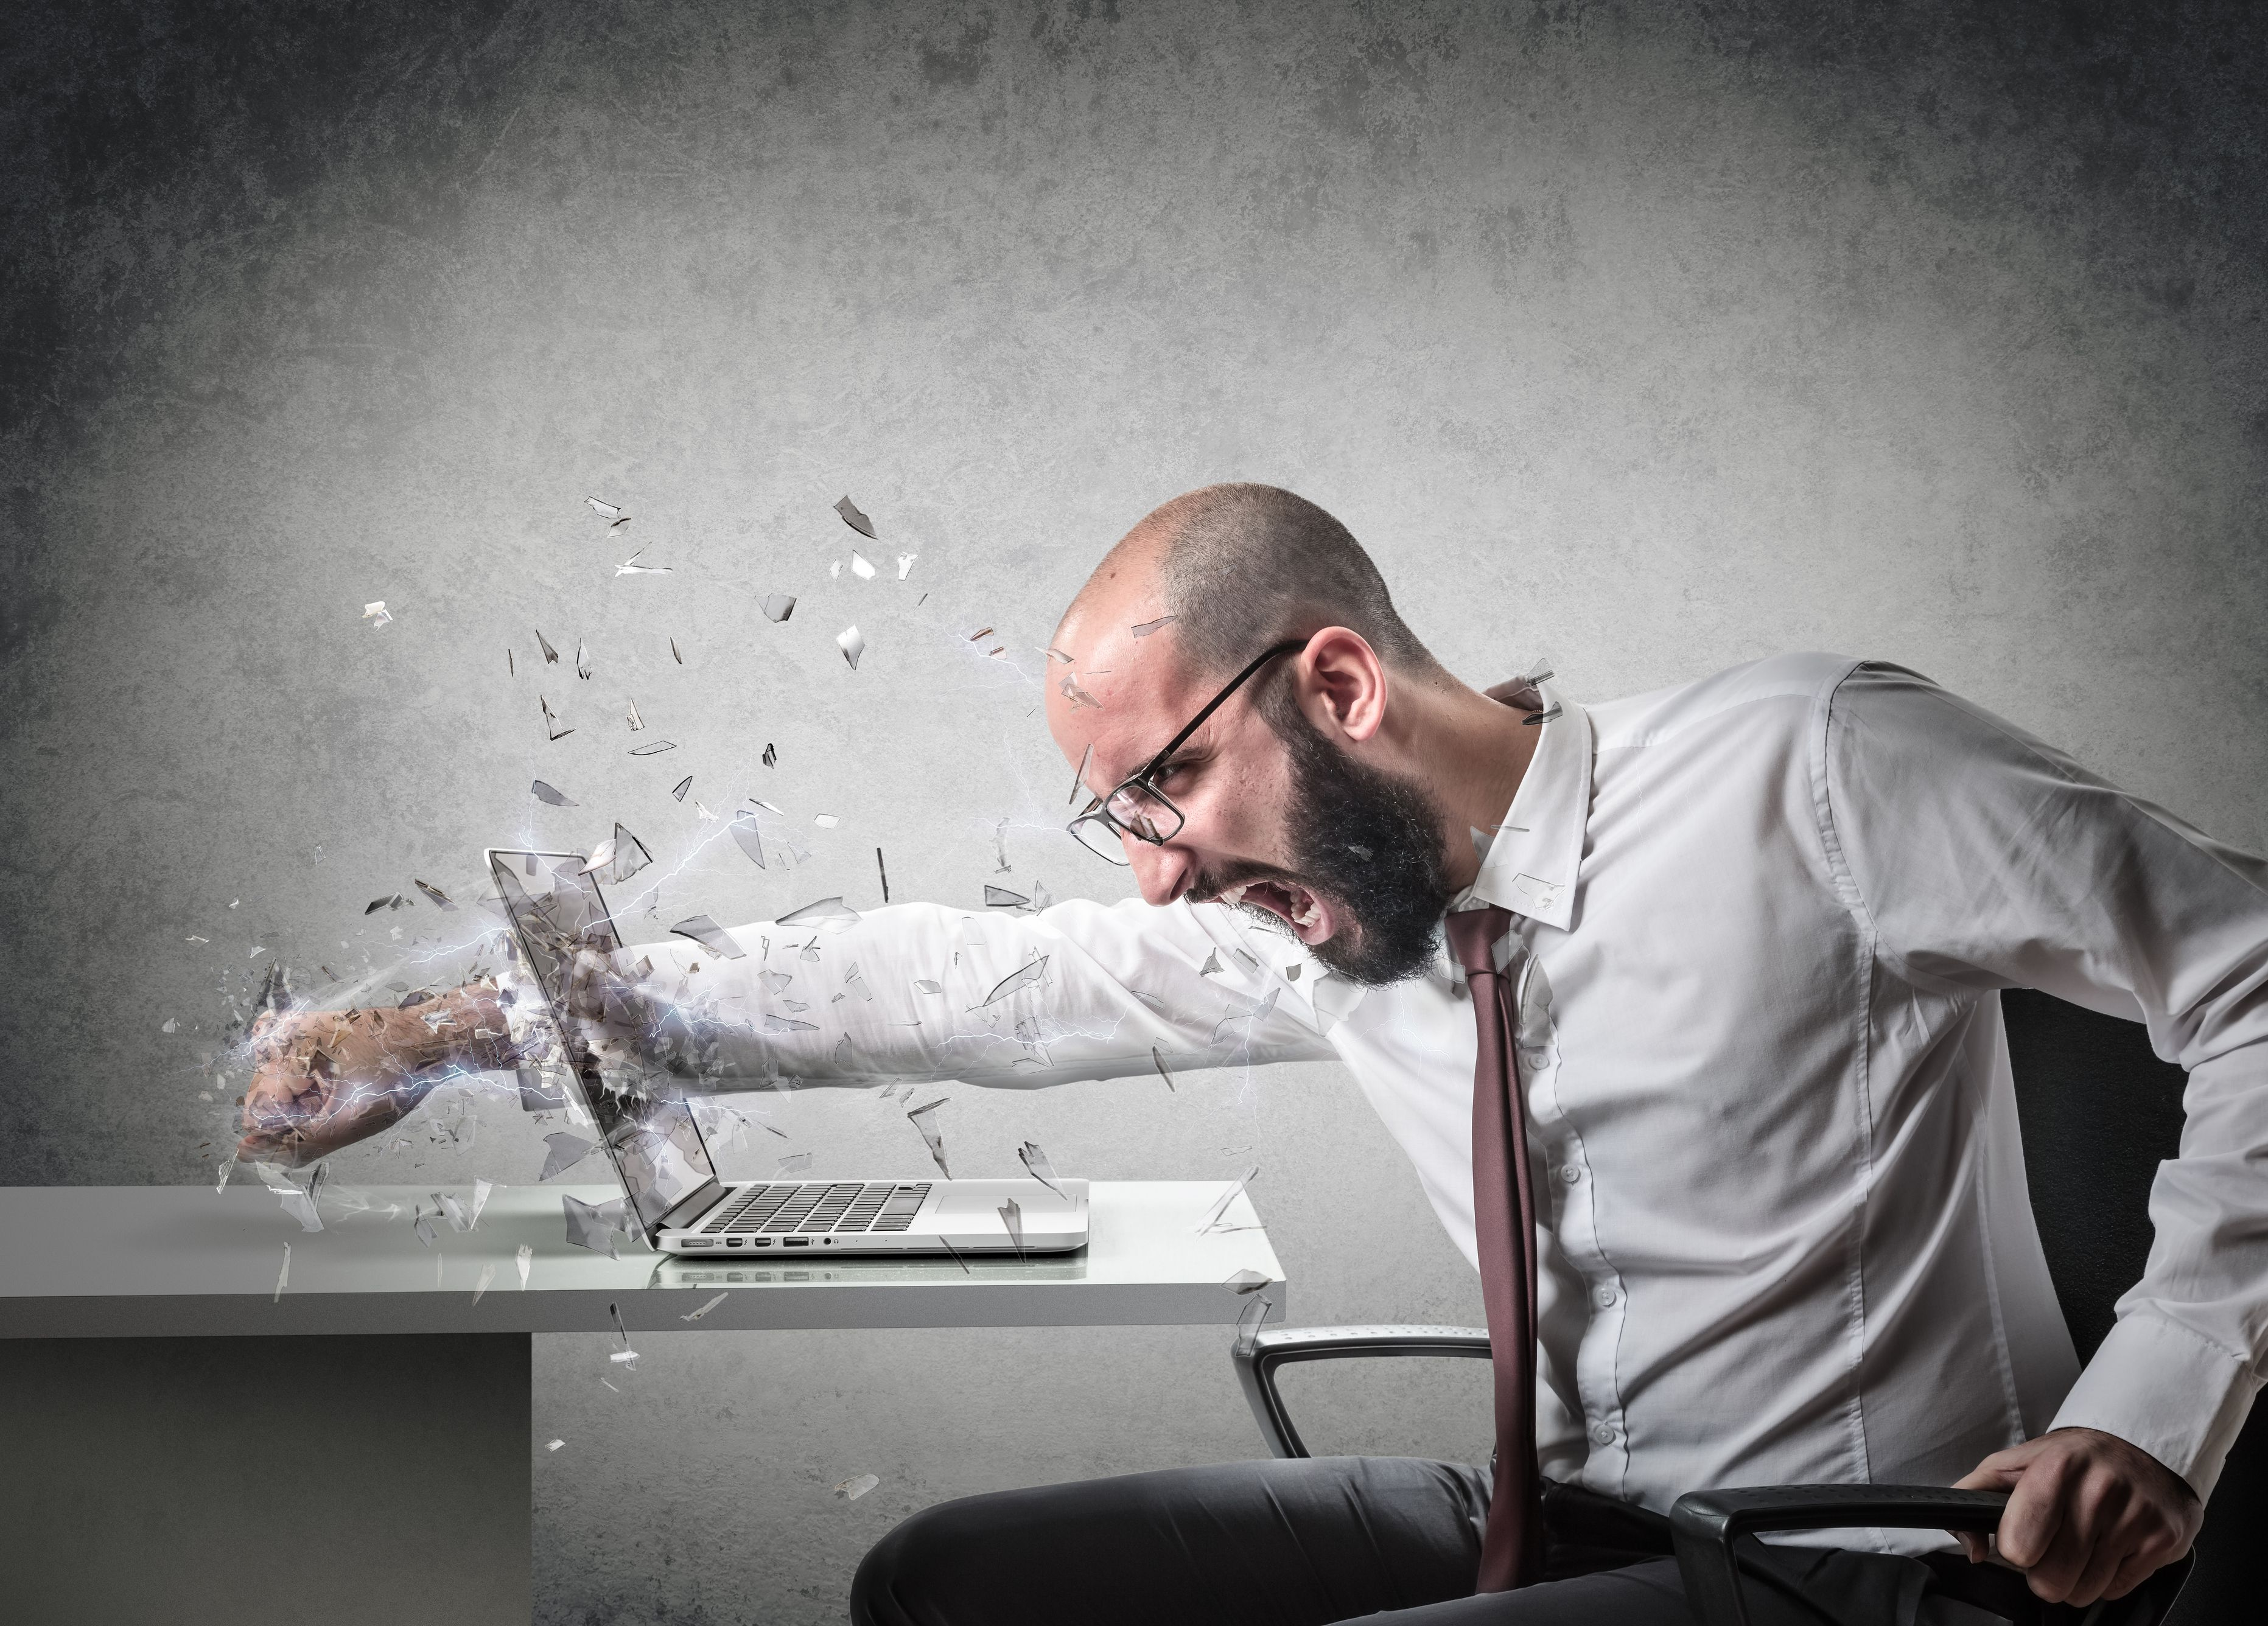 Person putting fist through computer screen in explosion of anger